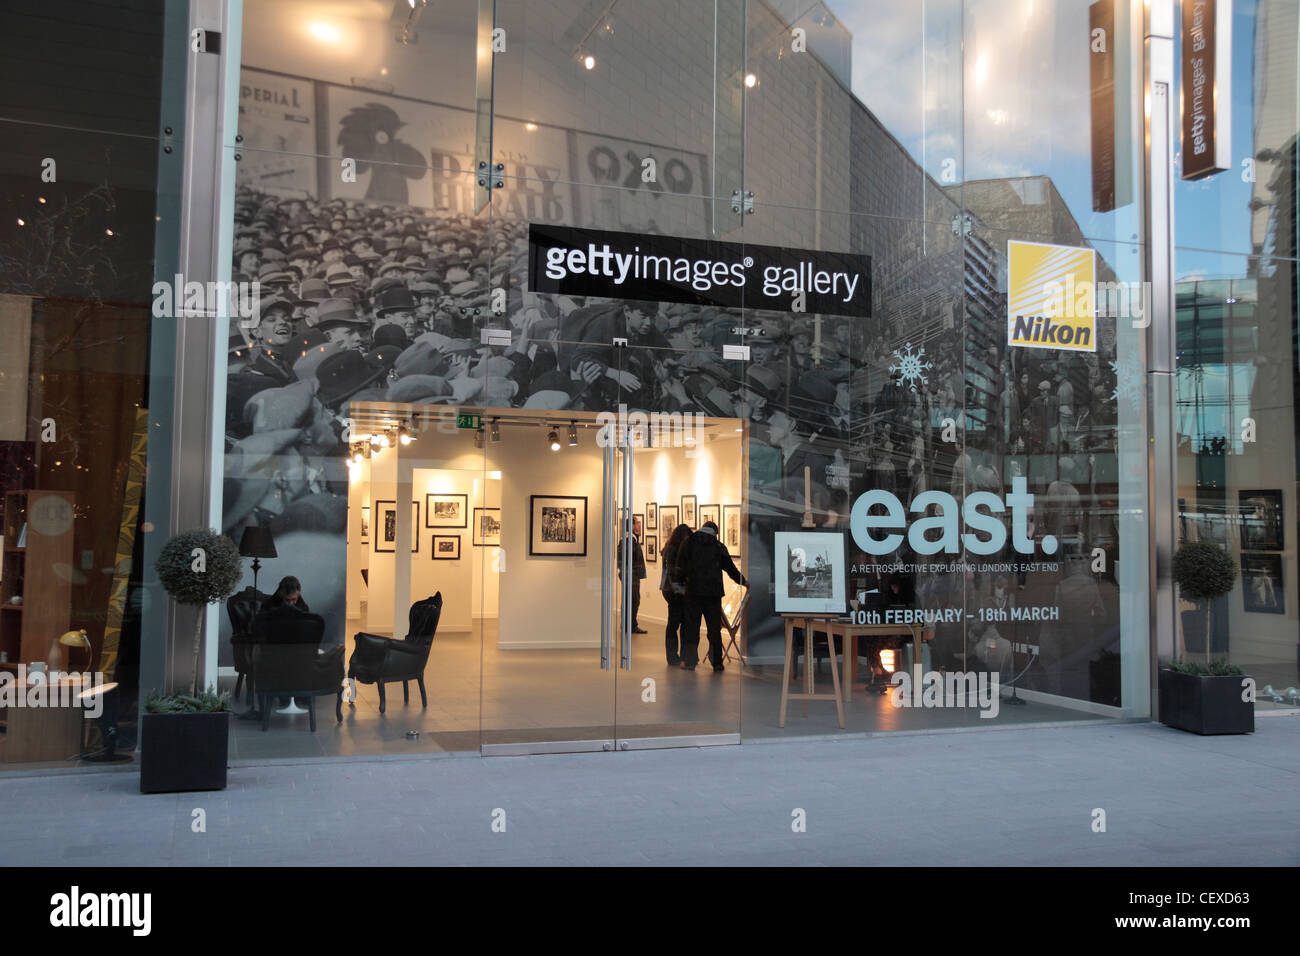 The Getty Images gallery in the Westfield Stratford City shopping centre in Stratford, UK. Stock Photo